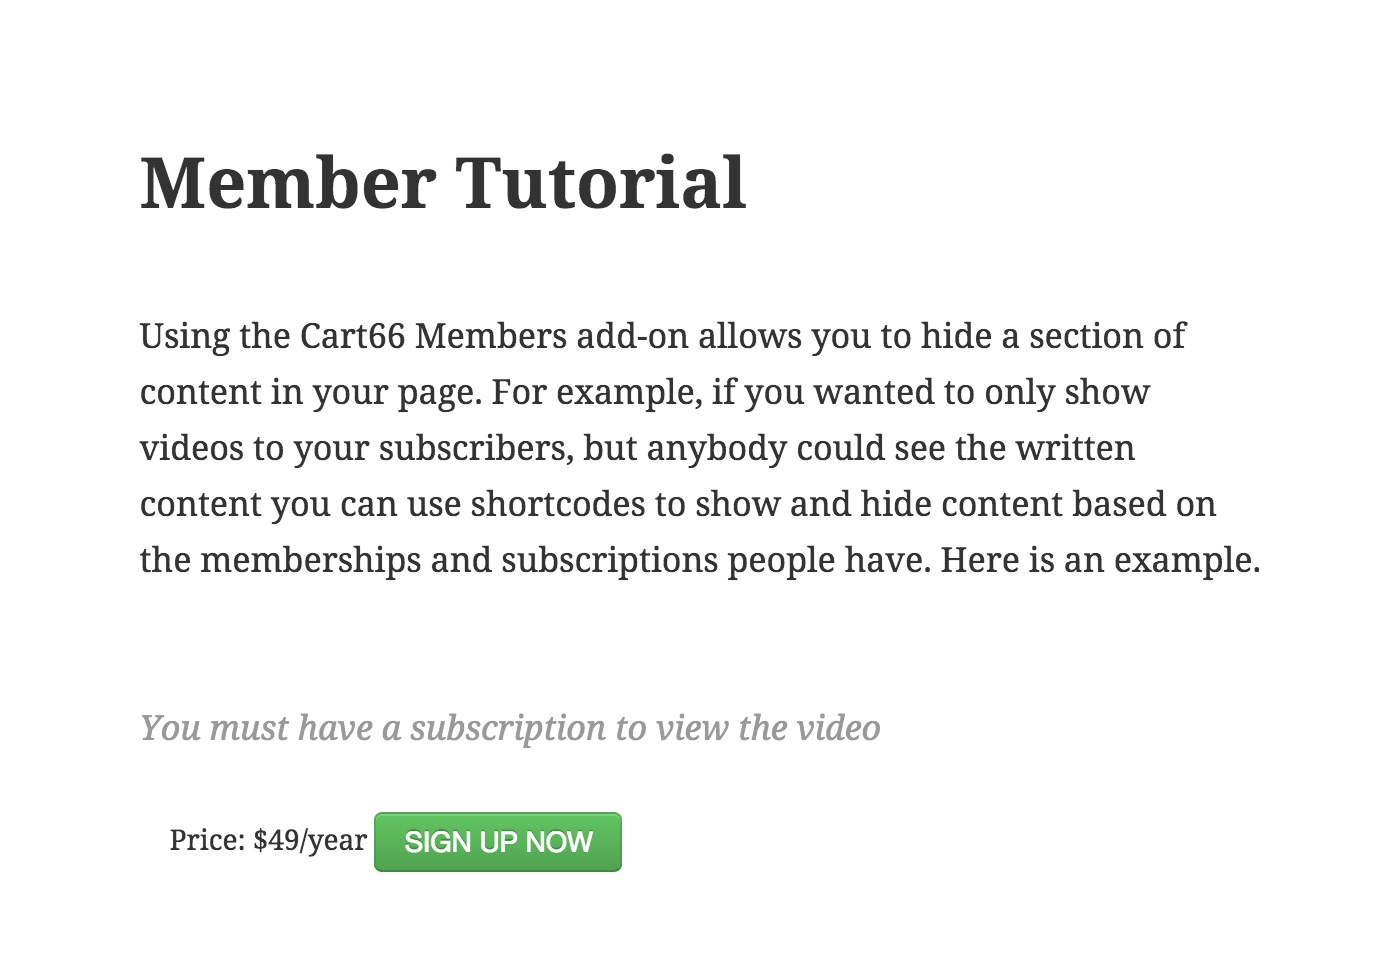 Member tutorial restricted access